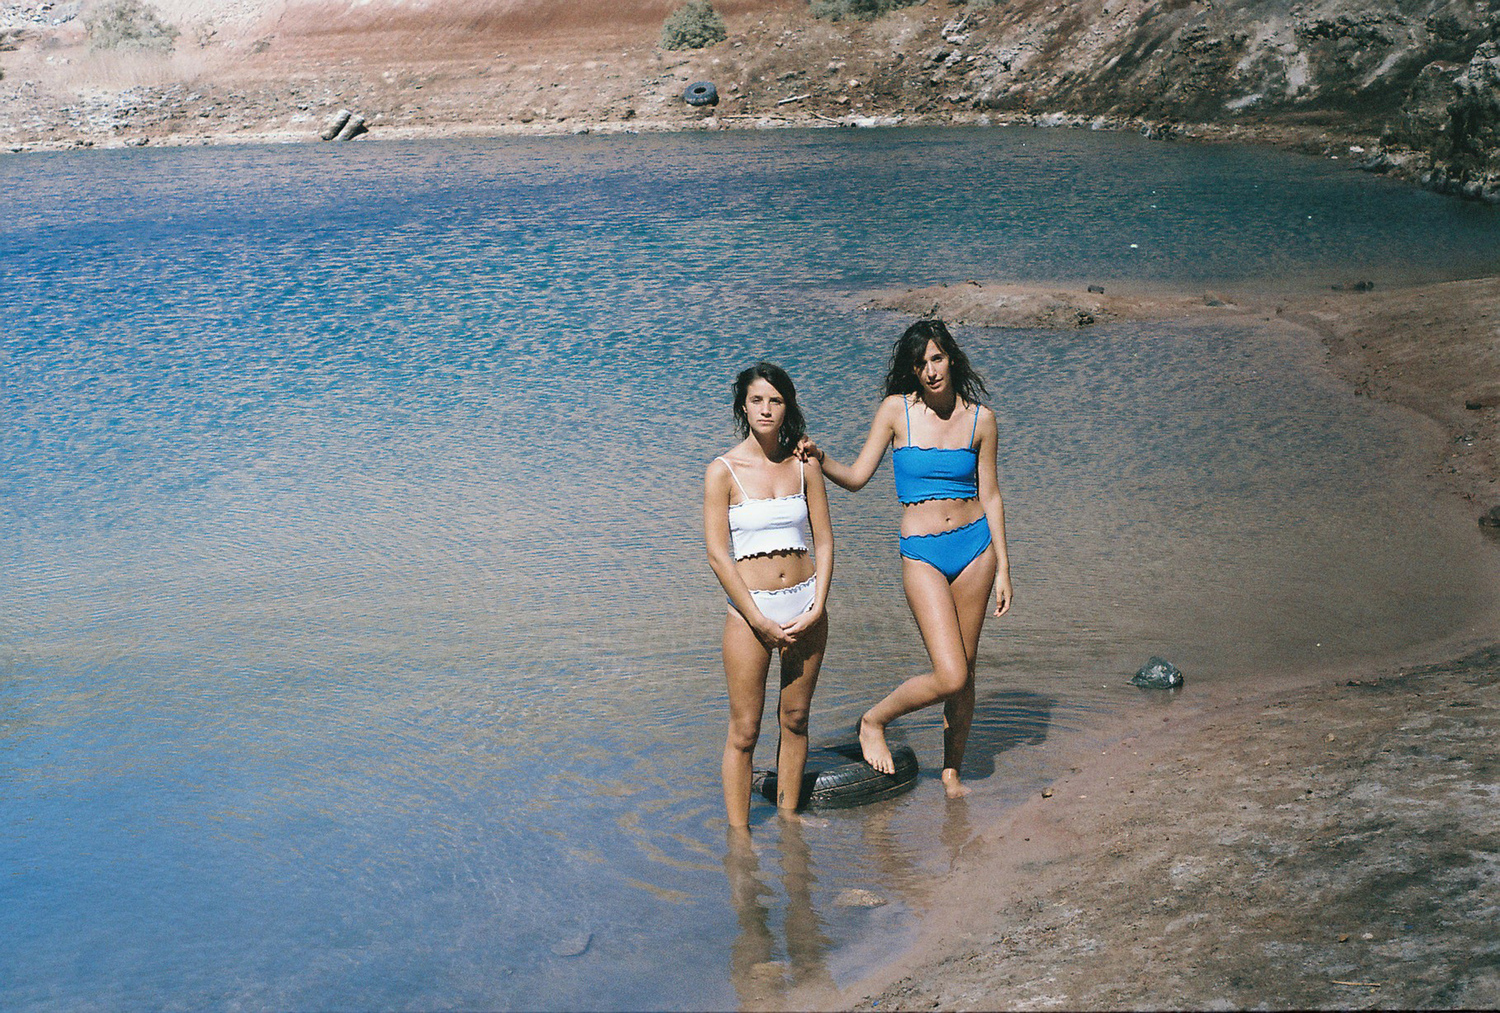 BABES IN BATHERS